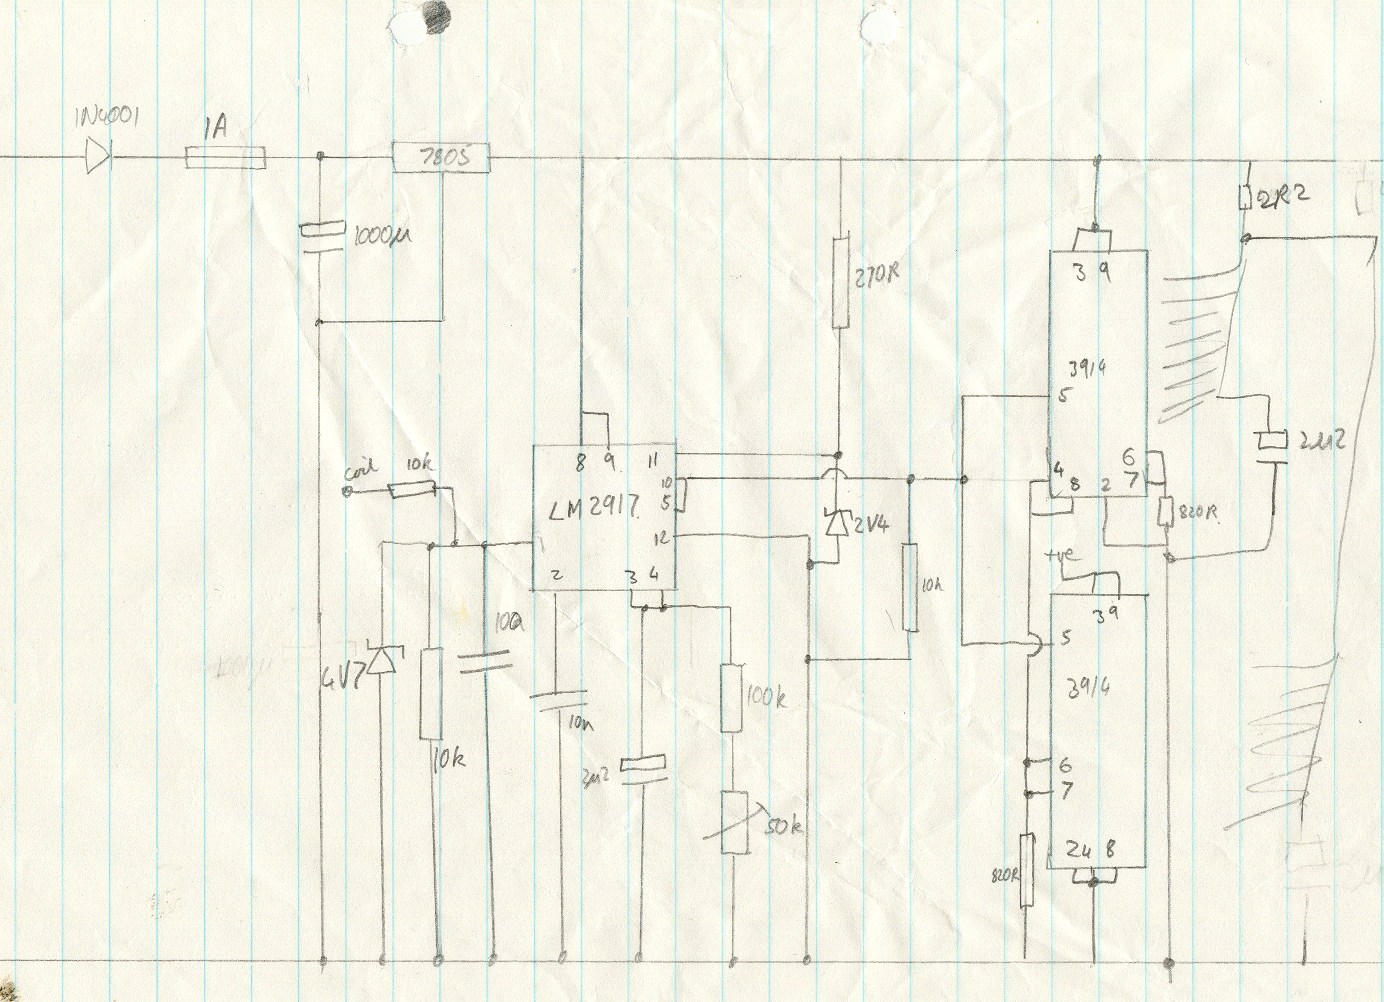 LM2917 frequency to voltage converter - schematic